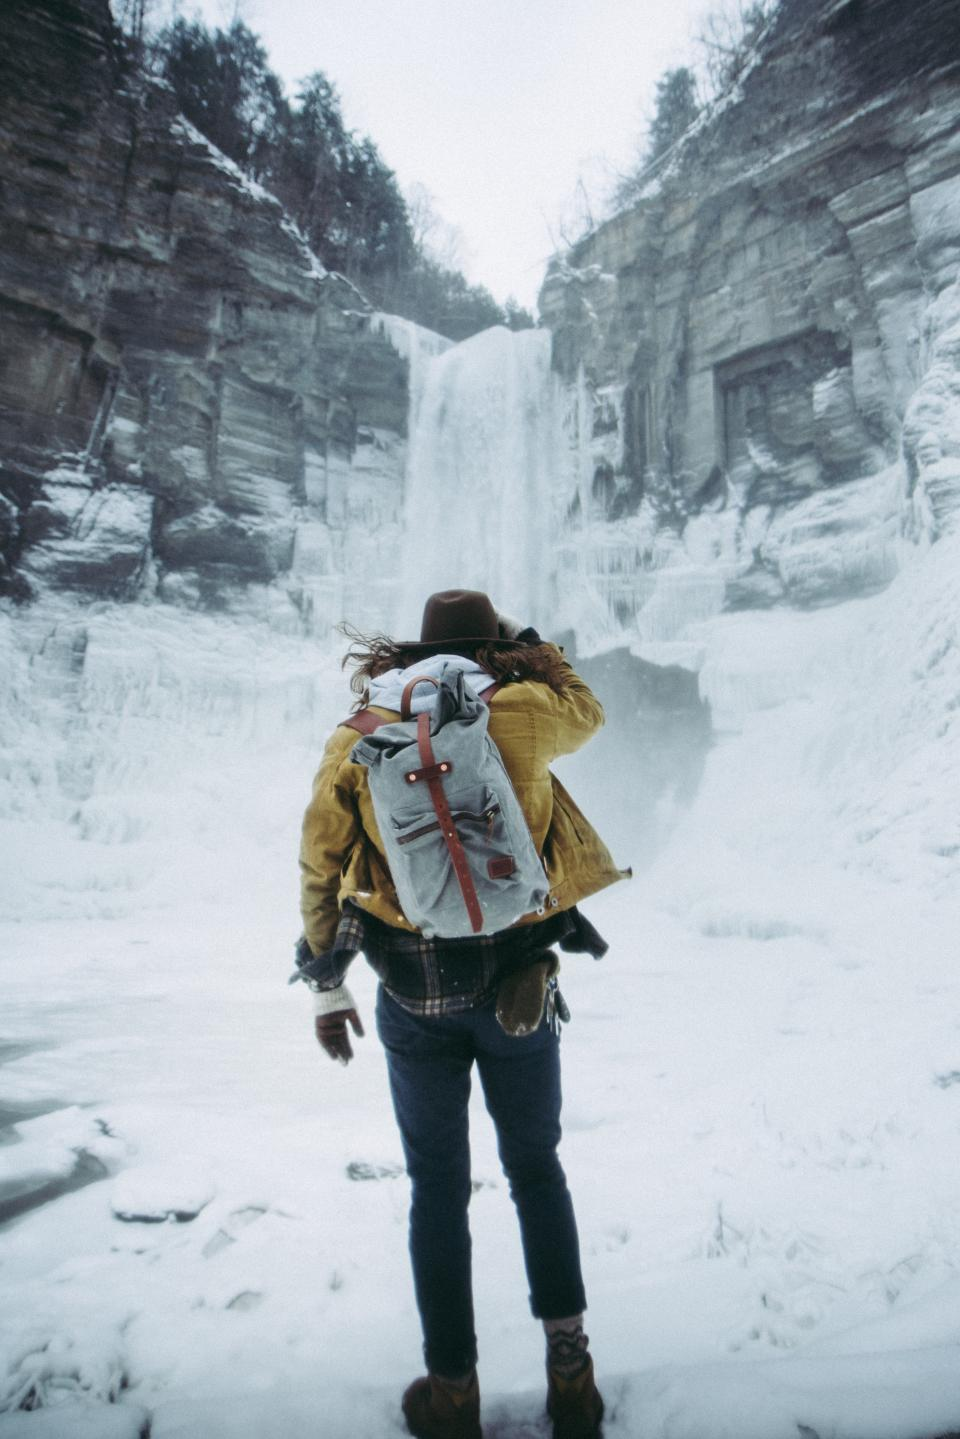 waterfall iceberg snow winter mountain hill people man guy travel backpack